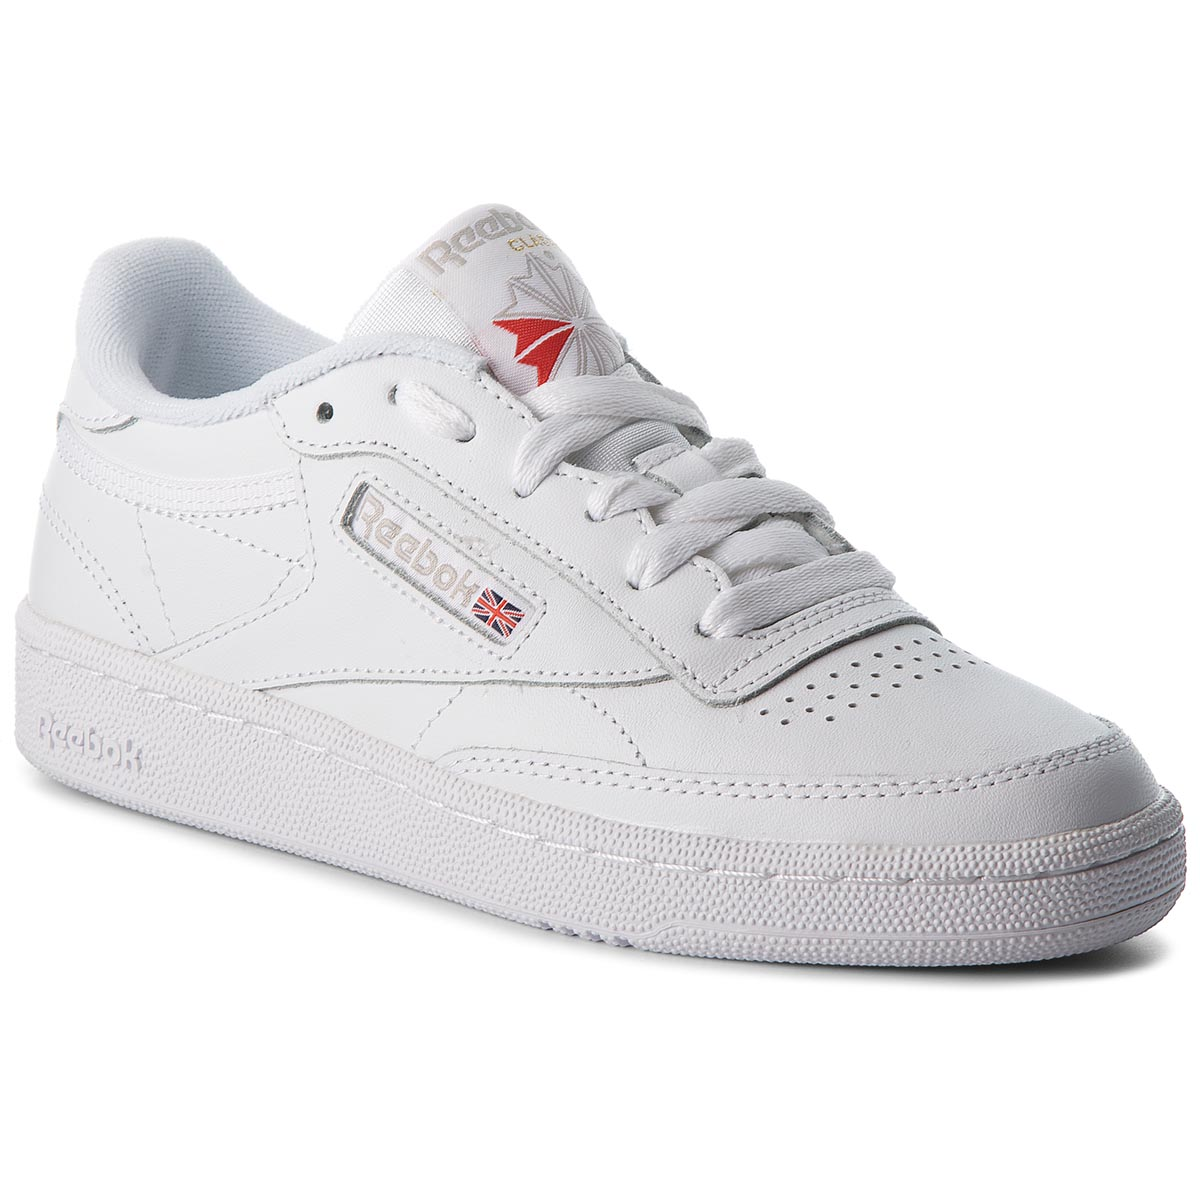 Image of Scarpe Reebok - Club C 85 BS7685 White/Light Grey